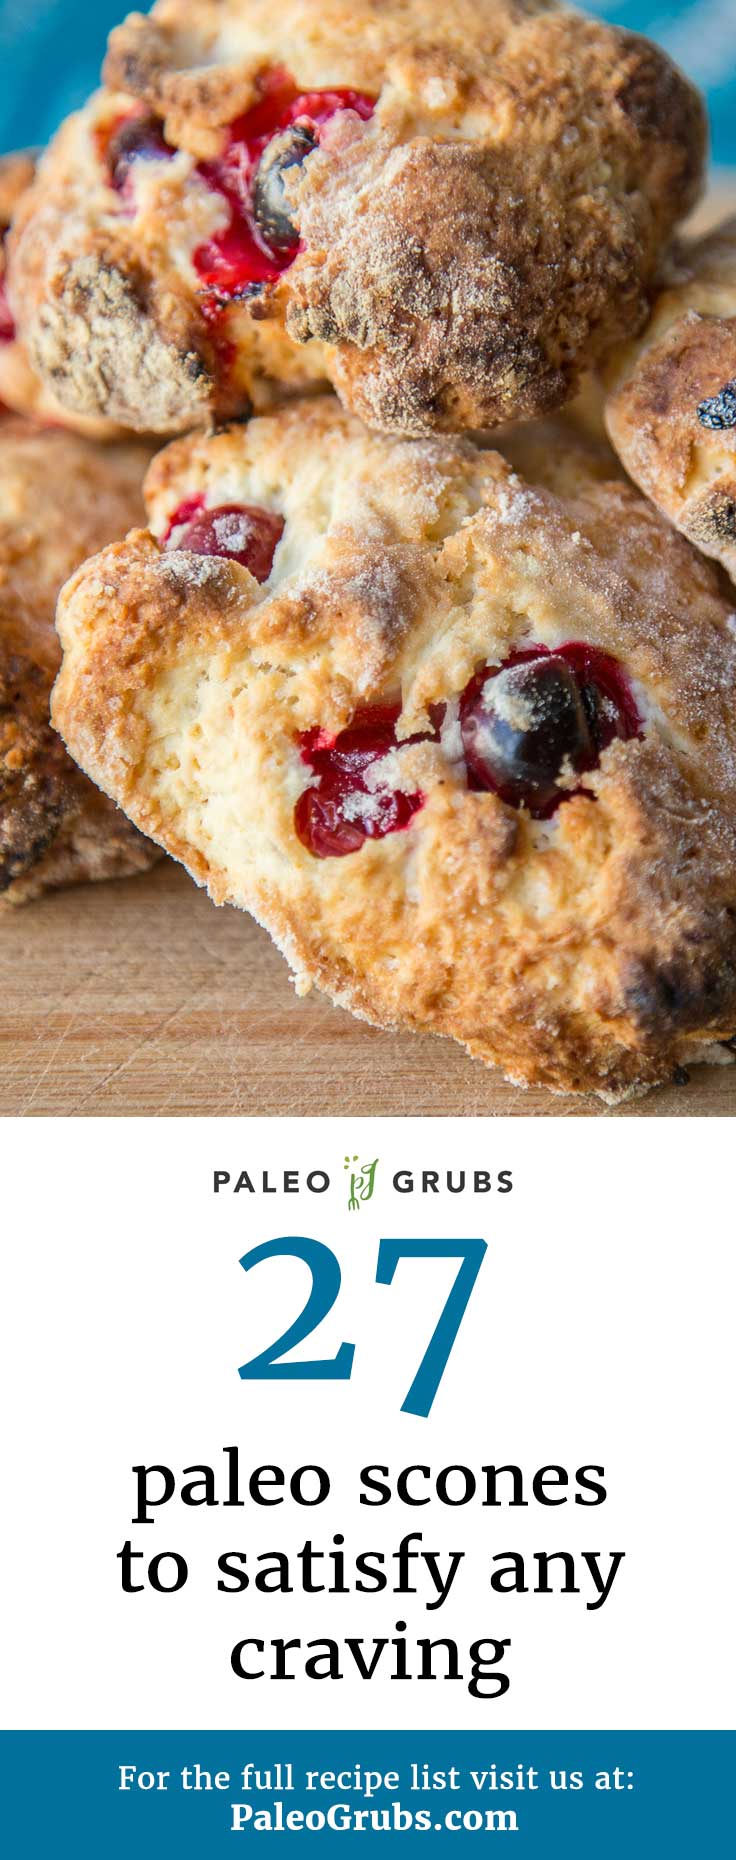 No more waiting in line at the coffee shop for an unhealthy scone! Now I make my own Paleo versions at home thanks to these scone recipes. Super yum!